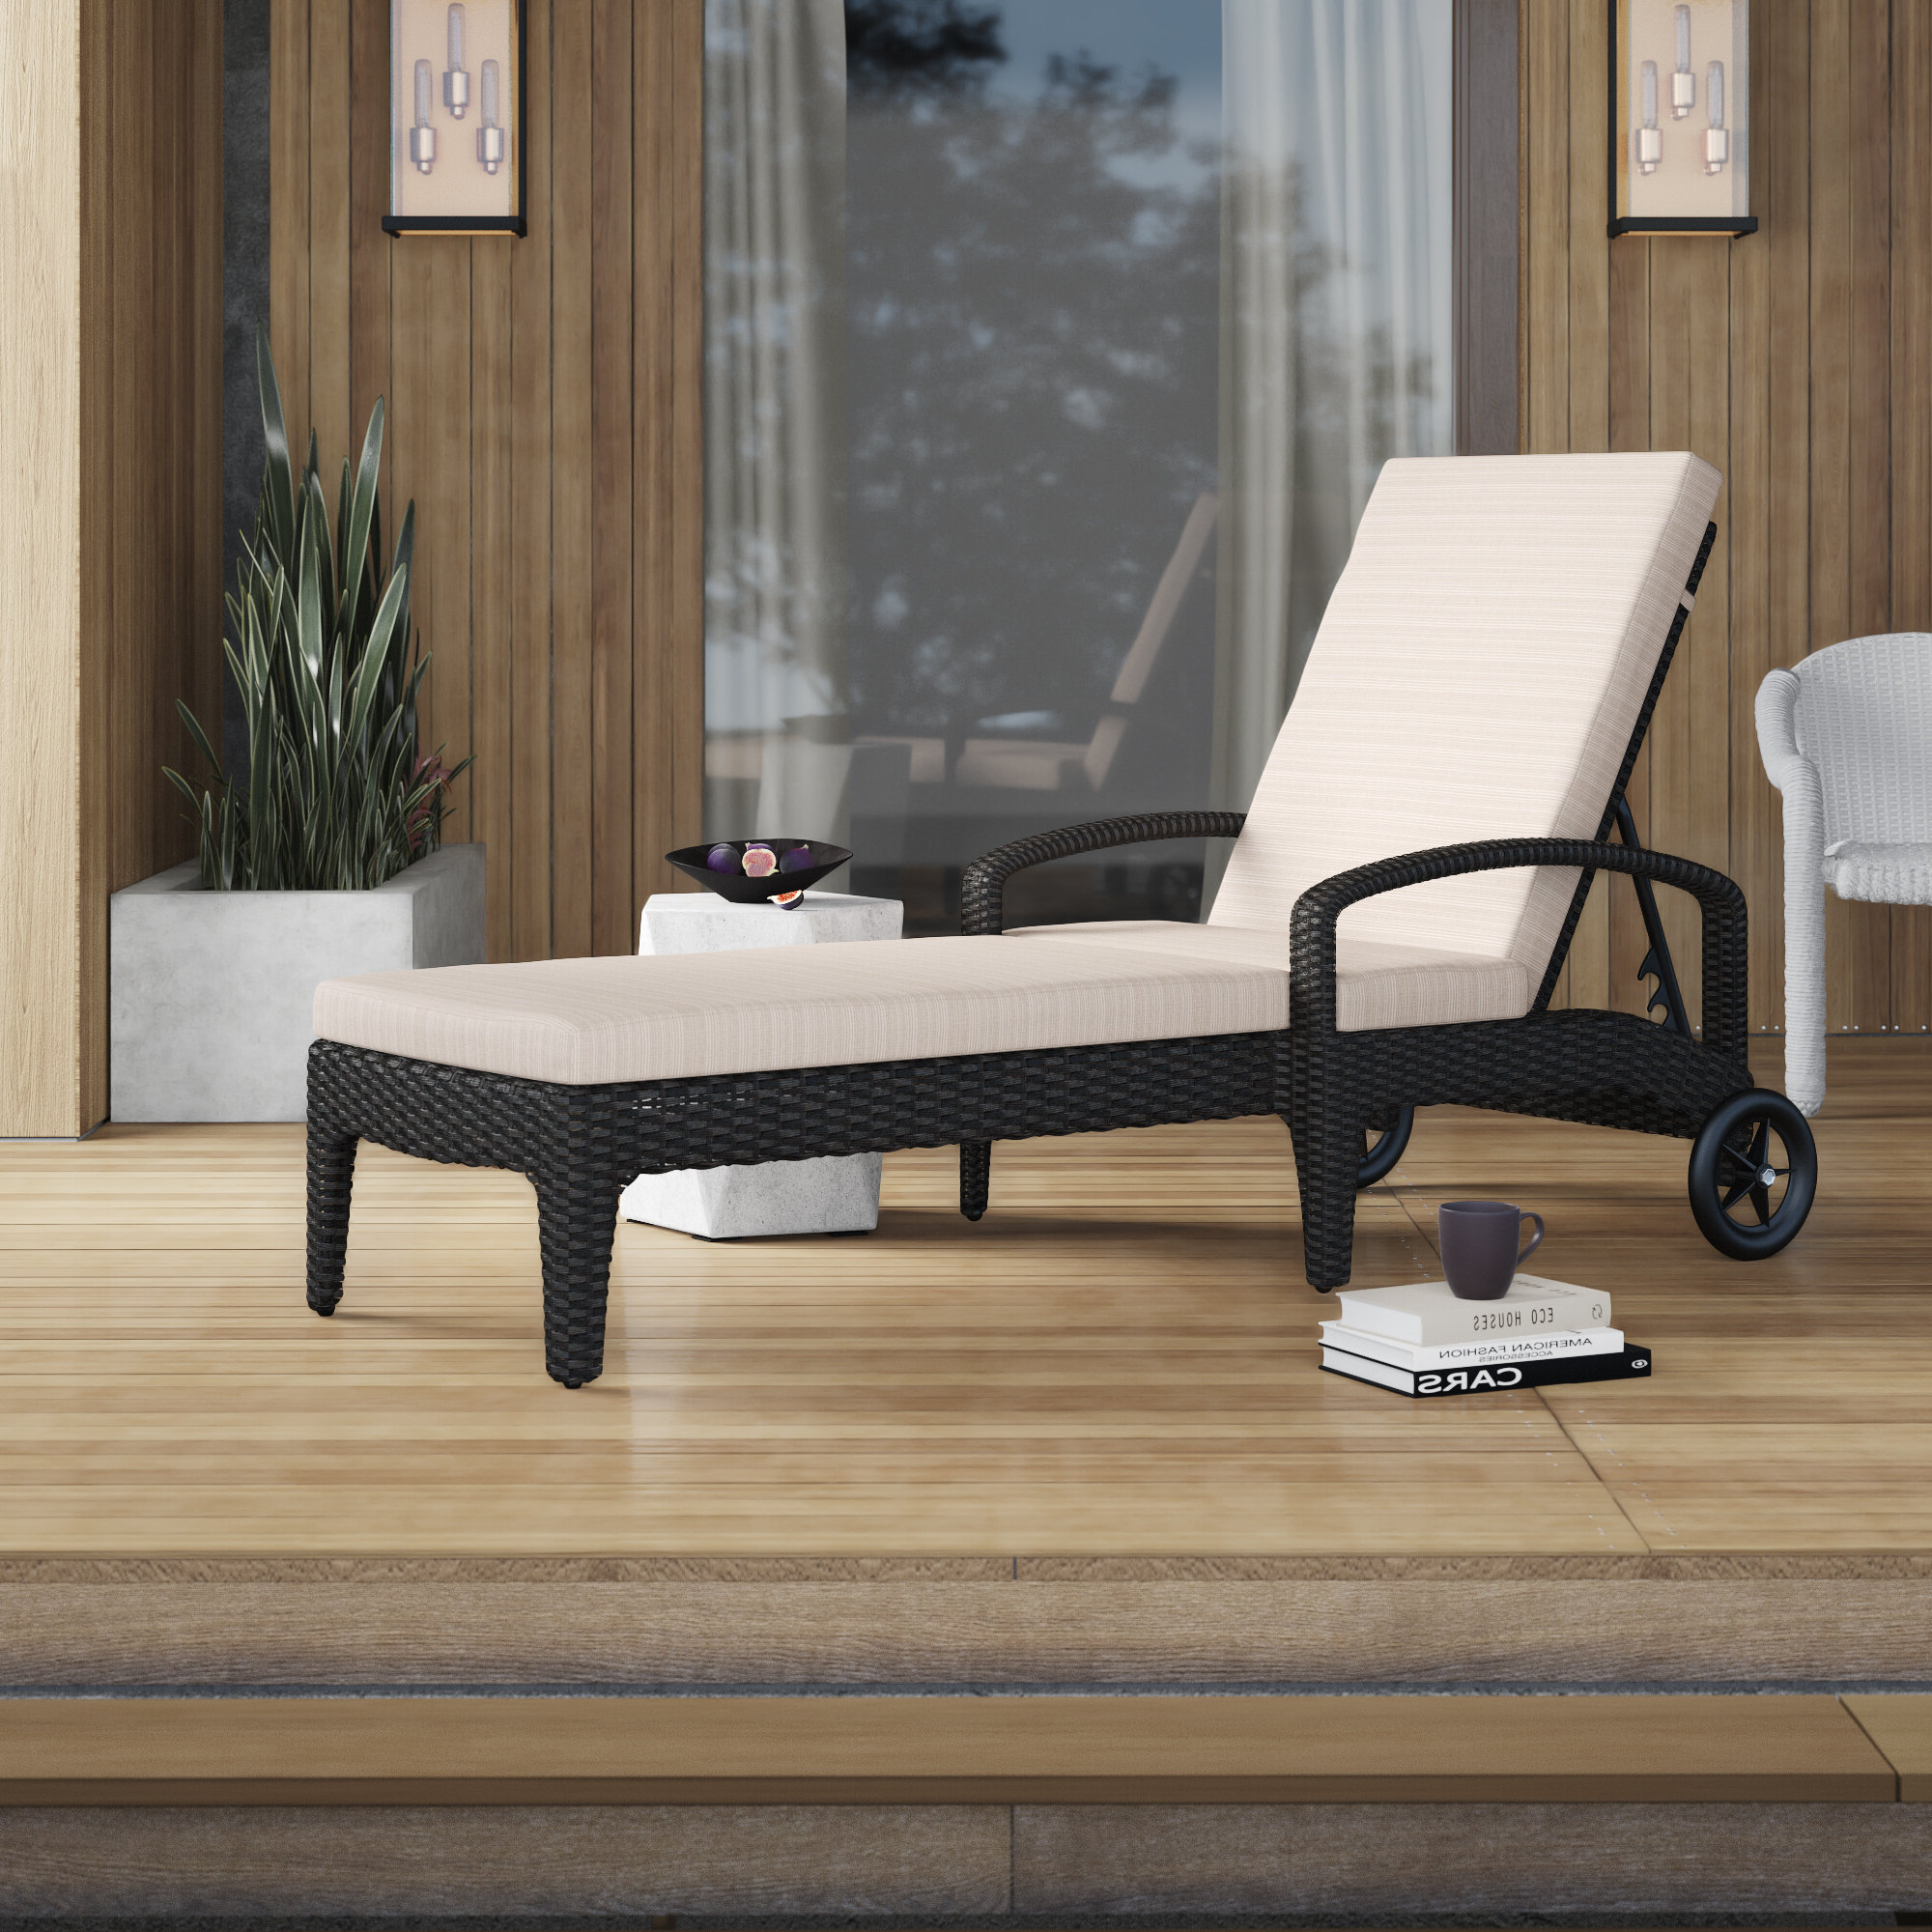 Lattice Outdoor Patio Pool Chaise Lounges With Wheels And Cushion For 2019 Landers Reclining Chaise Lounge With Cushion (View 21 of 25)